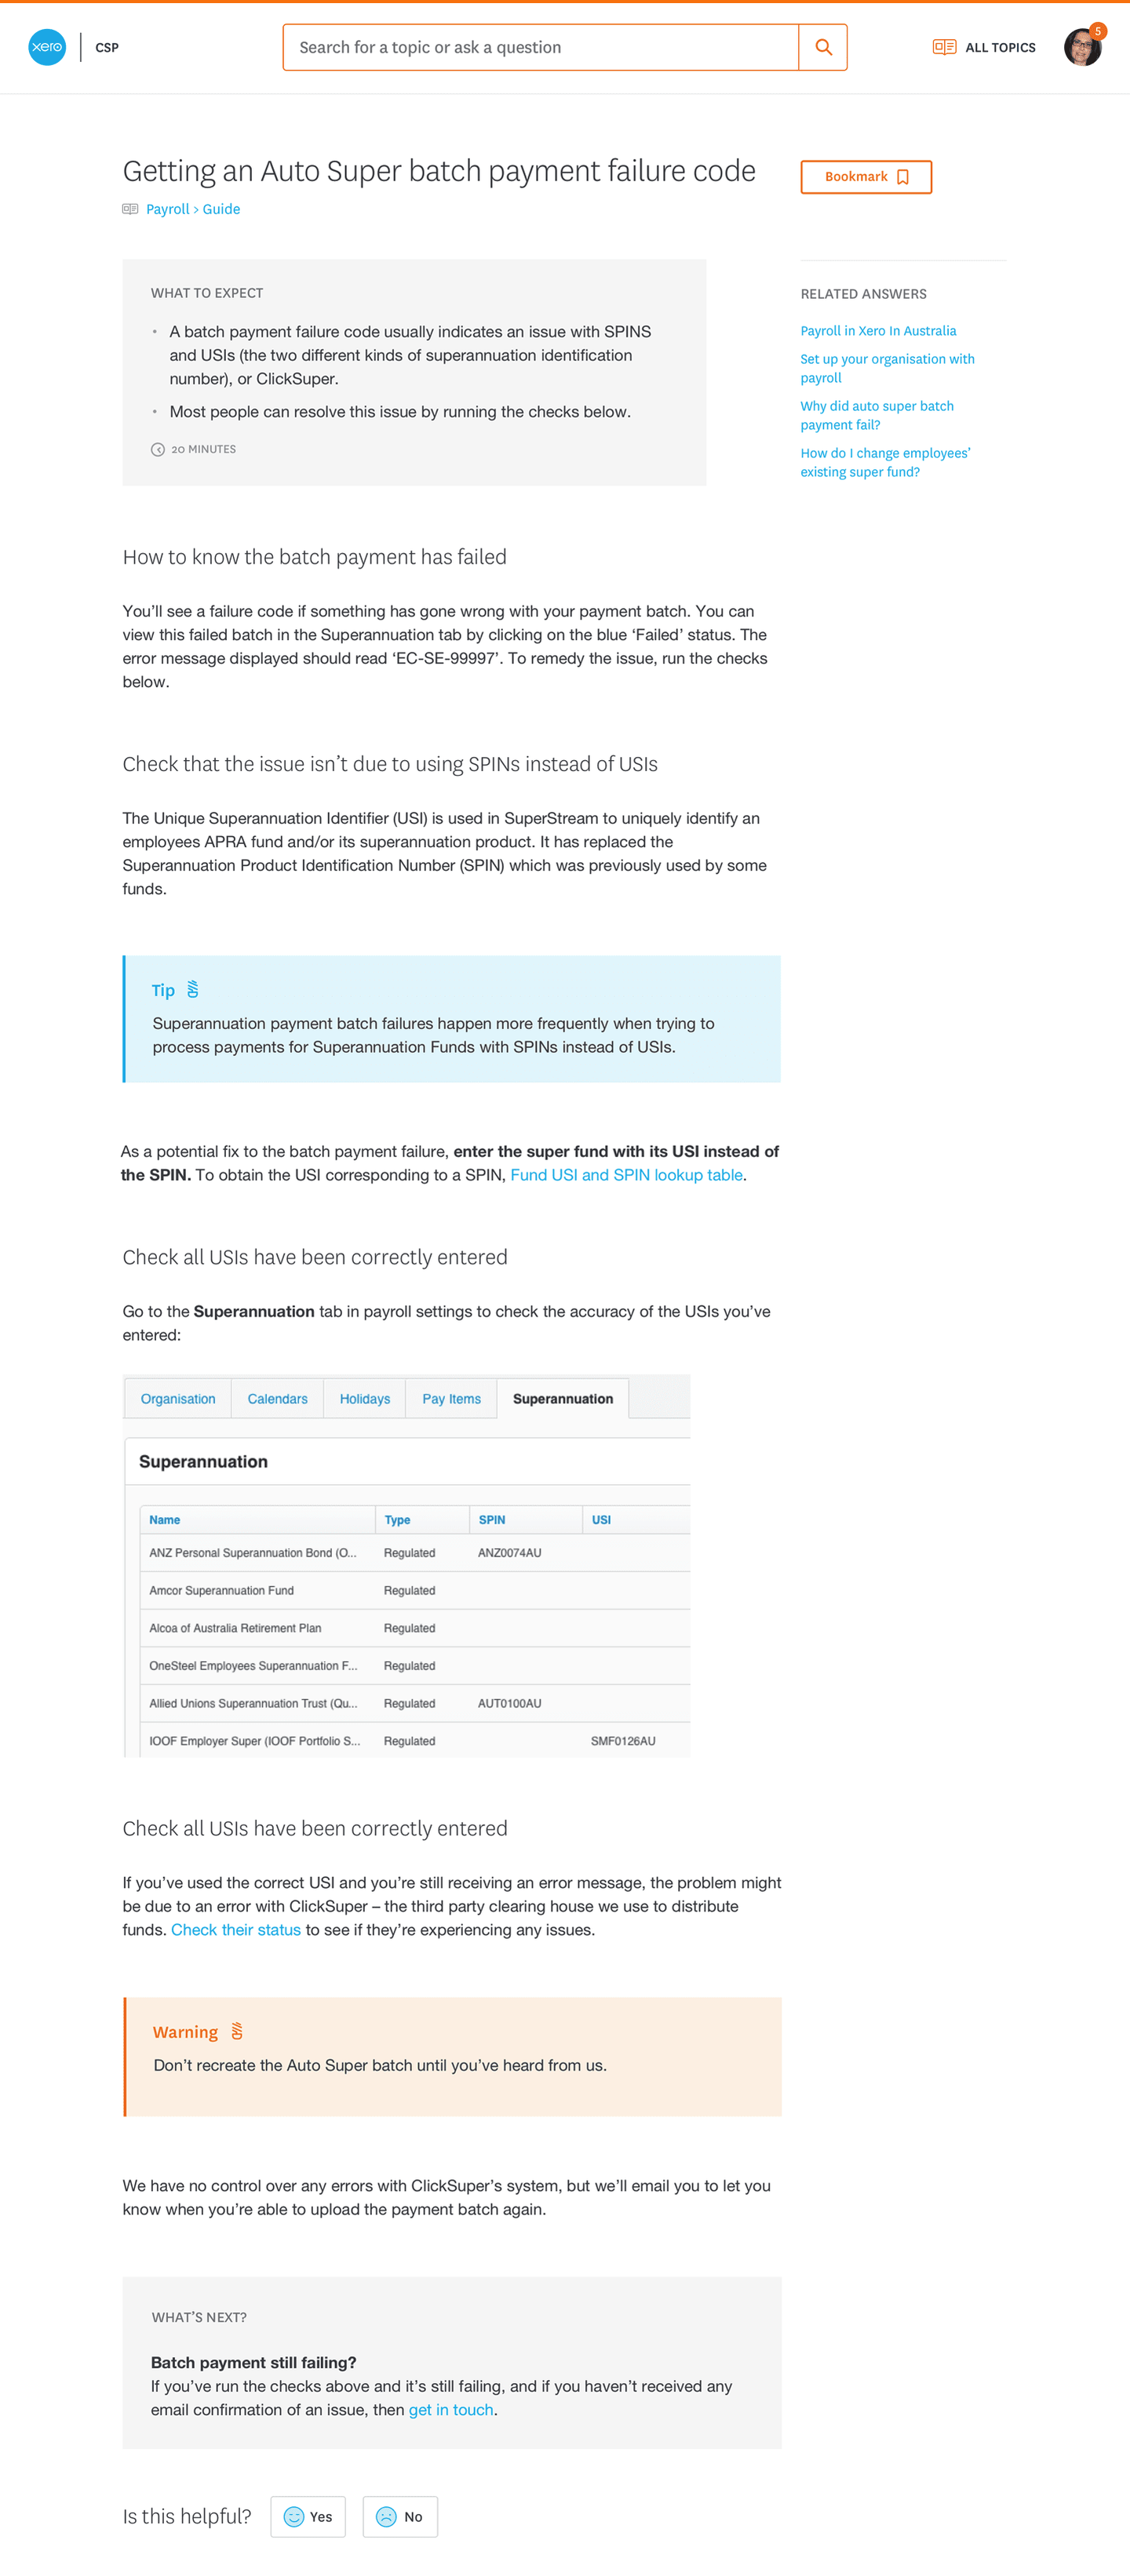 Xero support's discussion page